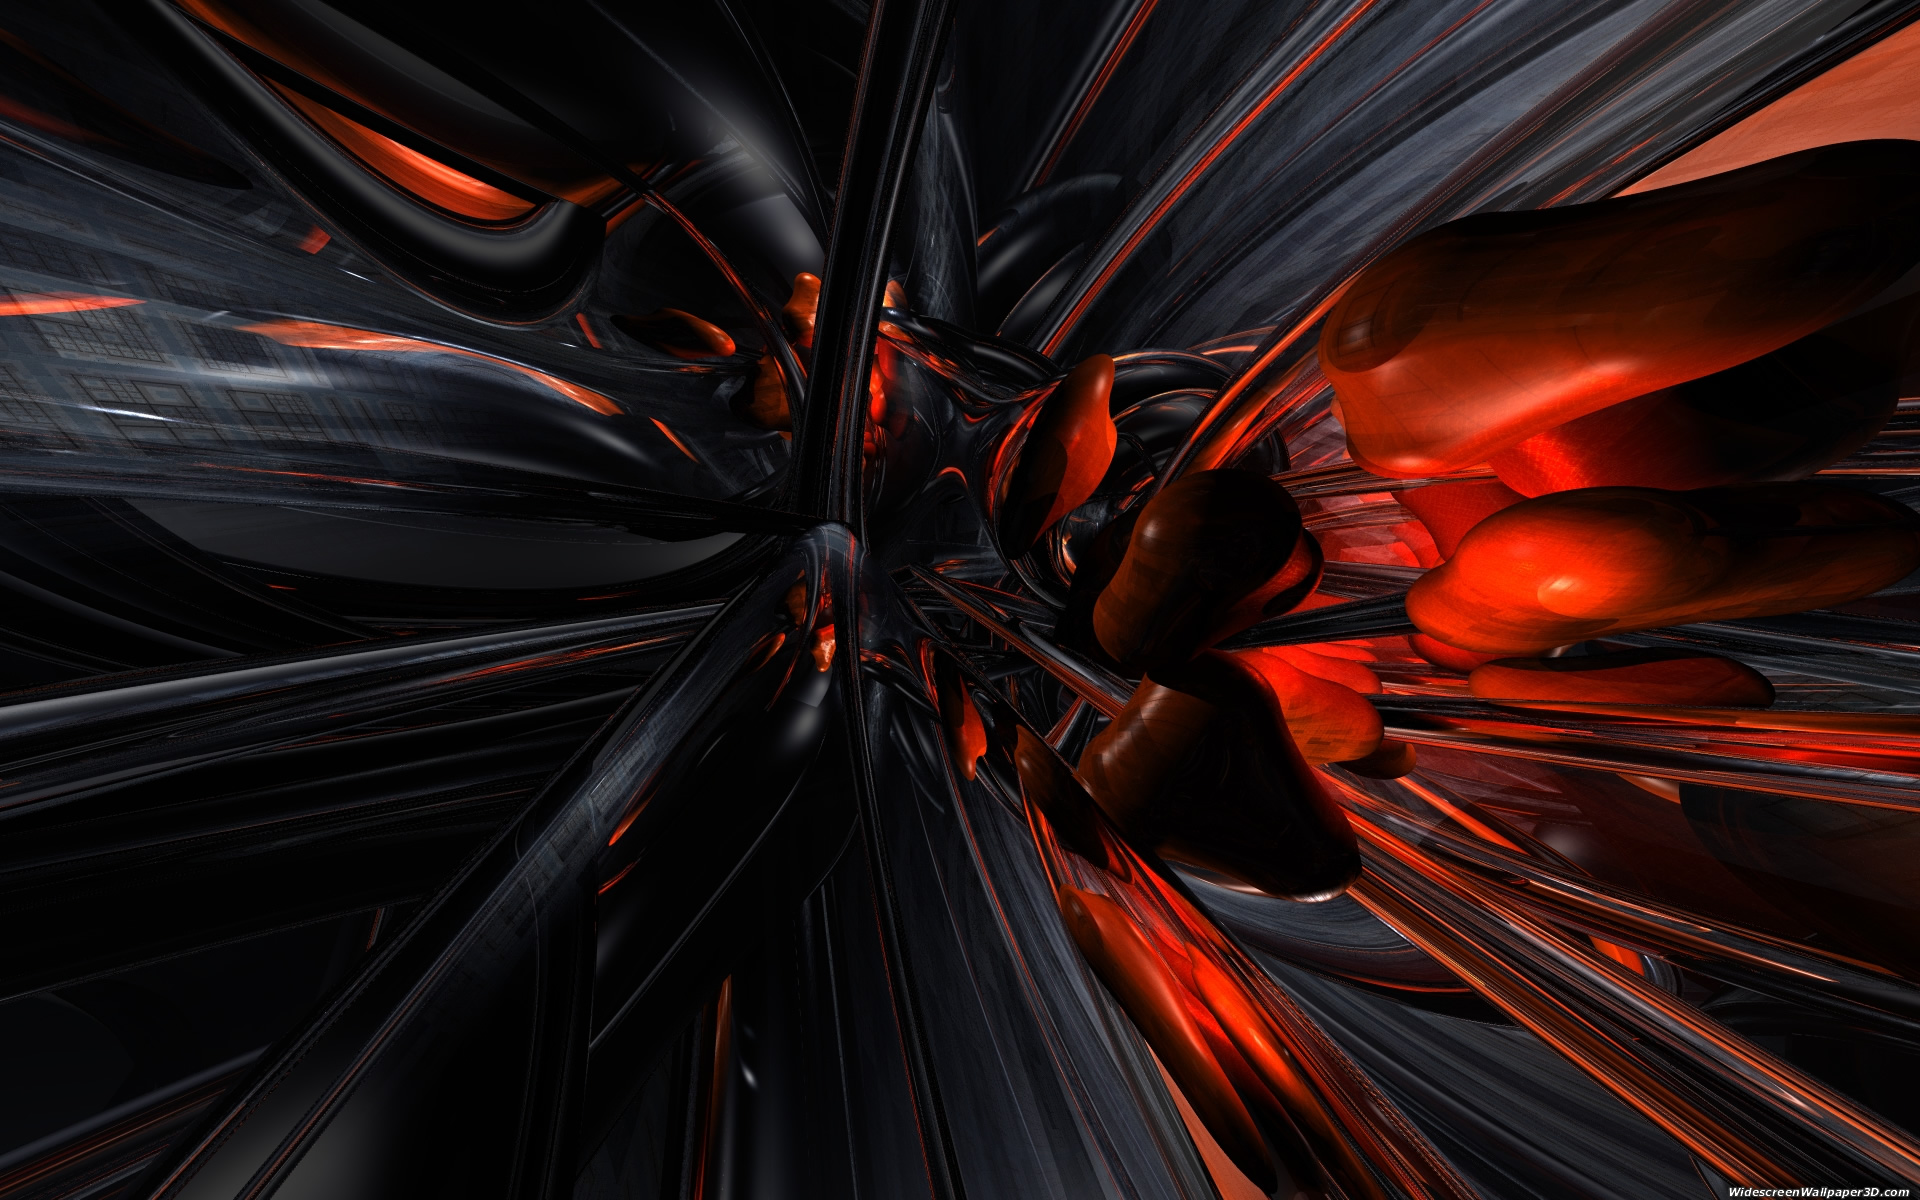 ... backgrounds twitter orange 1920x1200 1022 :: Cool Backgrounds: digitalresult.com/view/31-cool-backgrounds-wallpapers